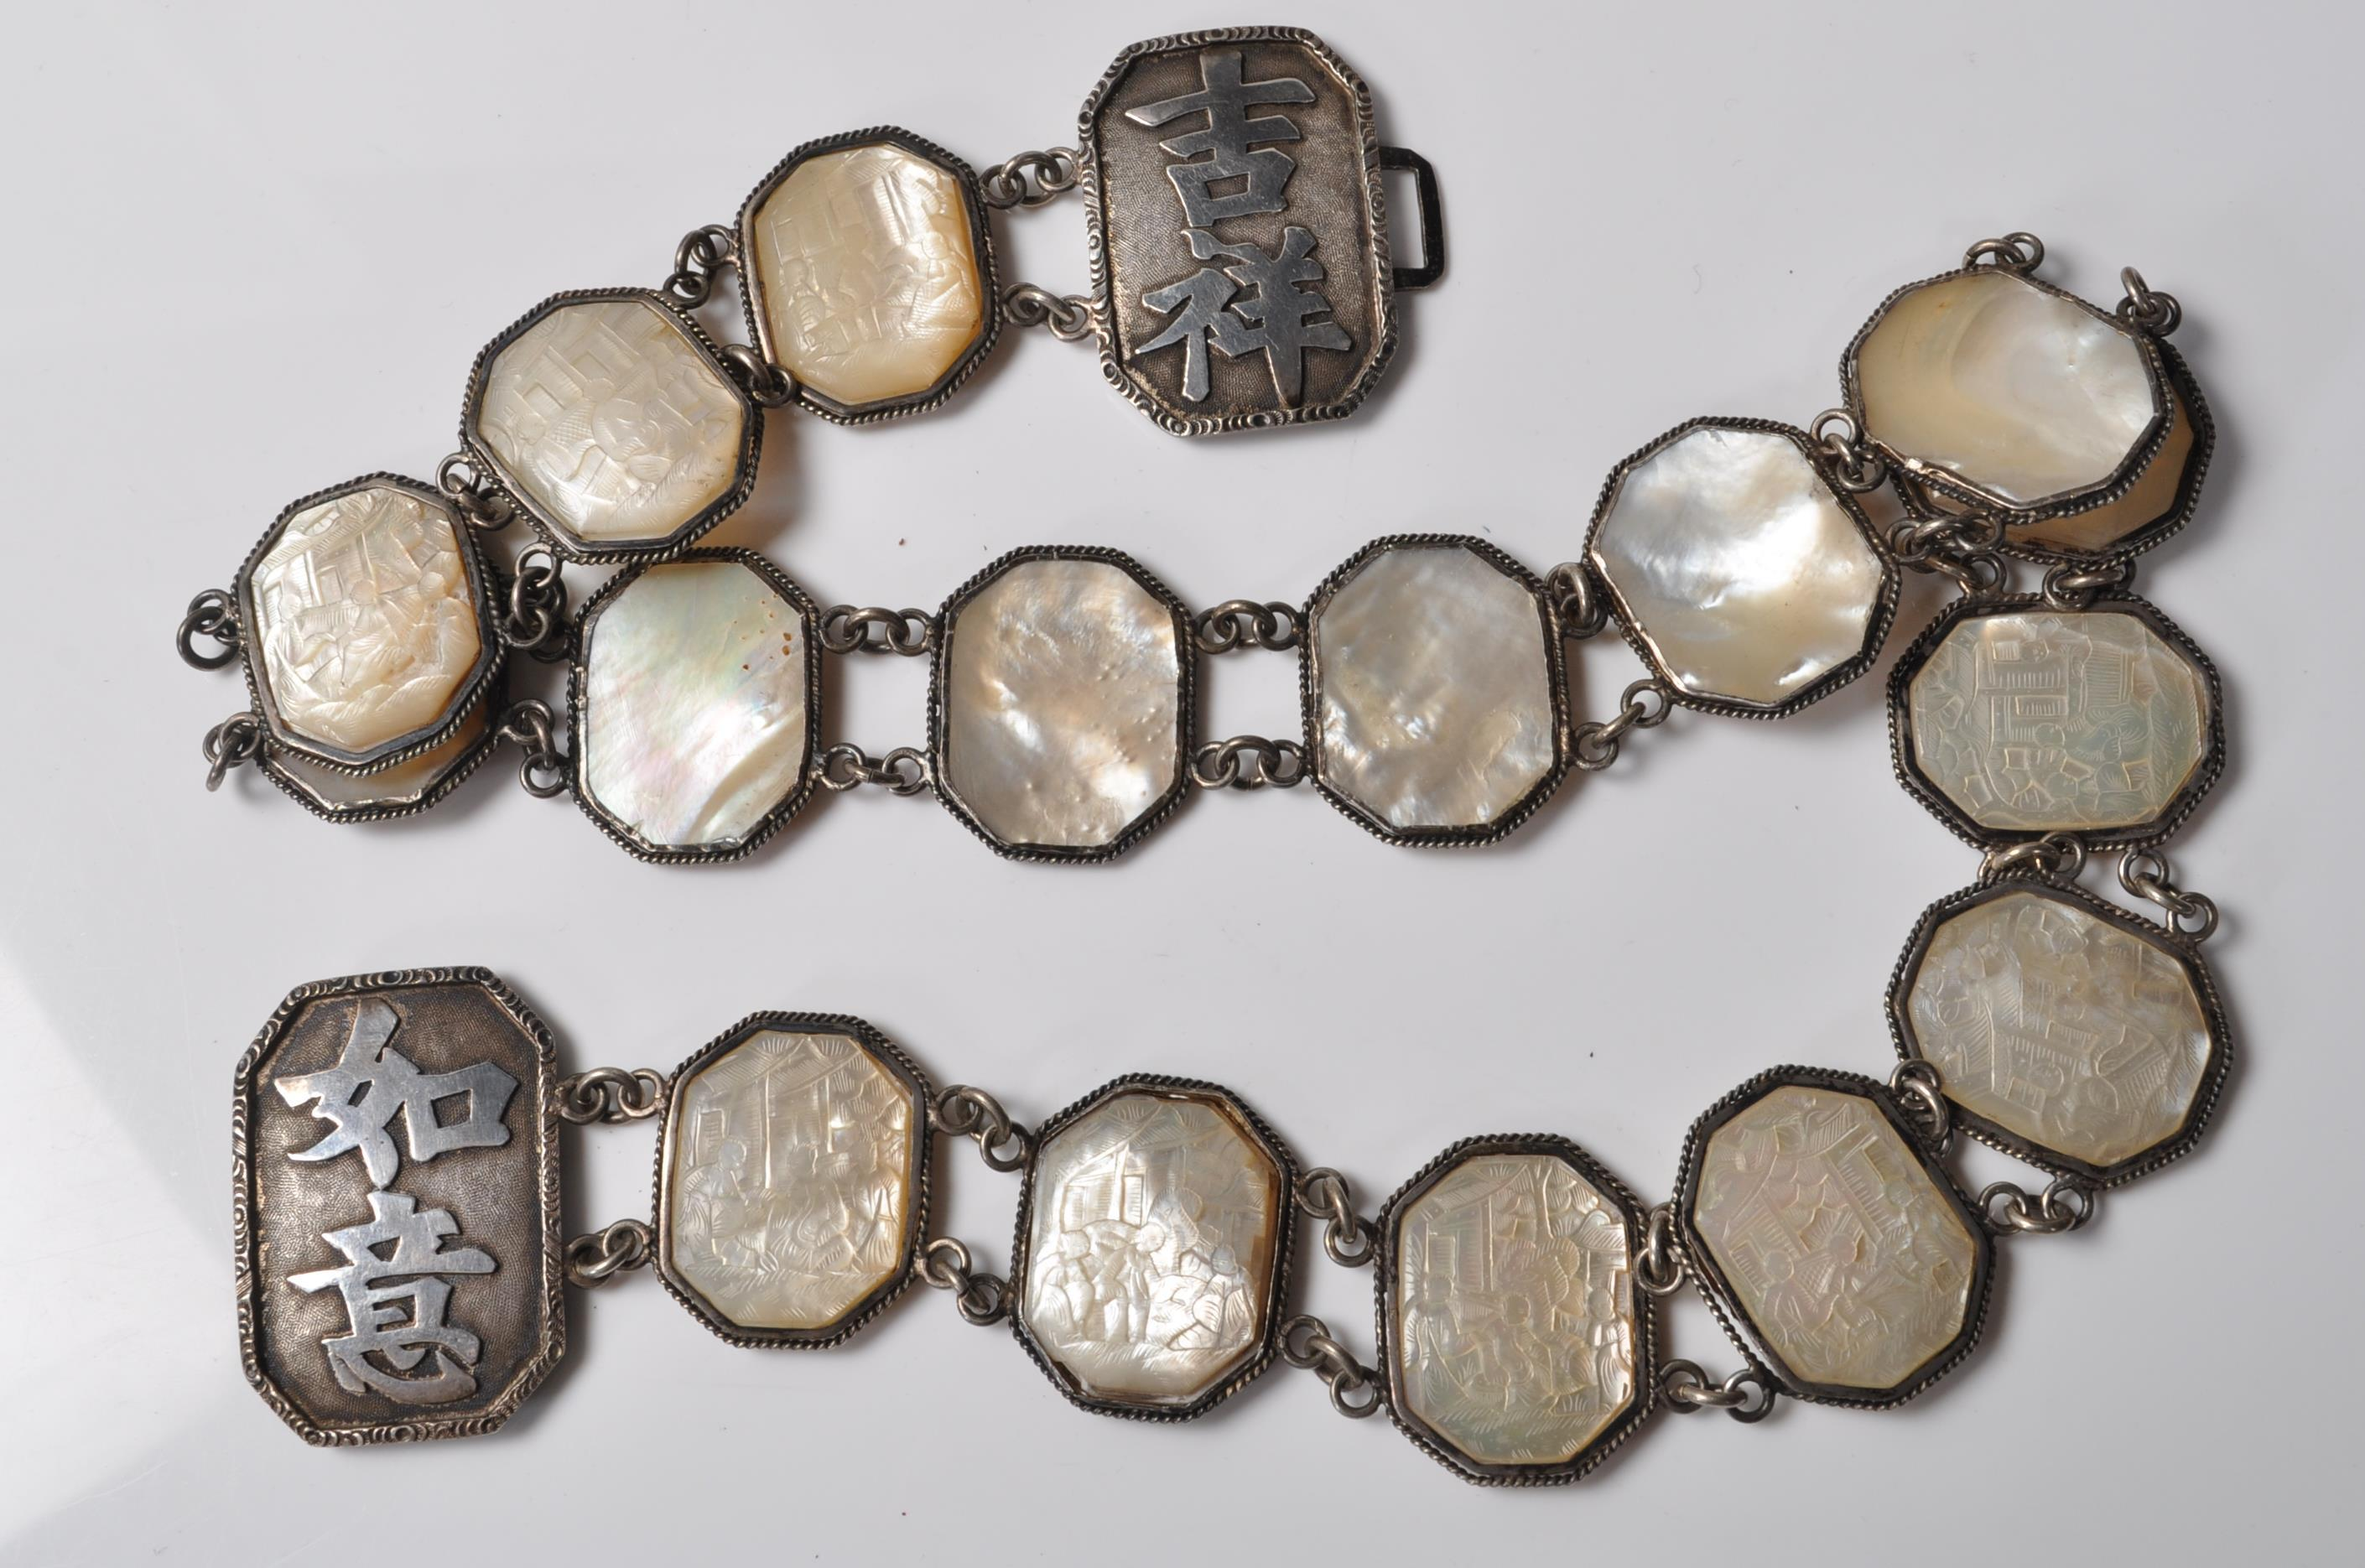 ANTIQUE CHINESE SILVER AND MOTHER OF PEARL BELT